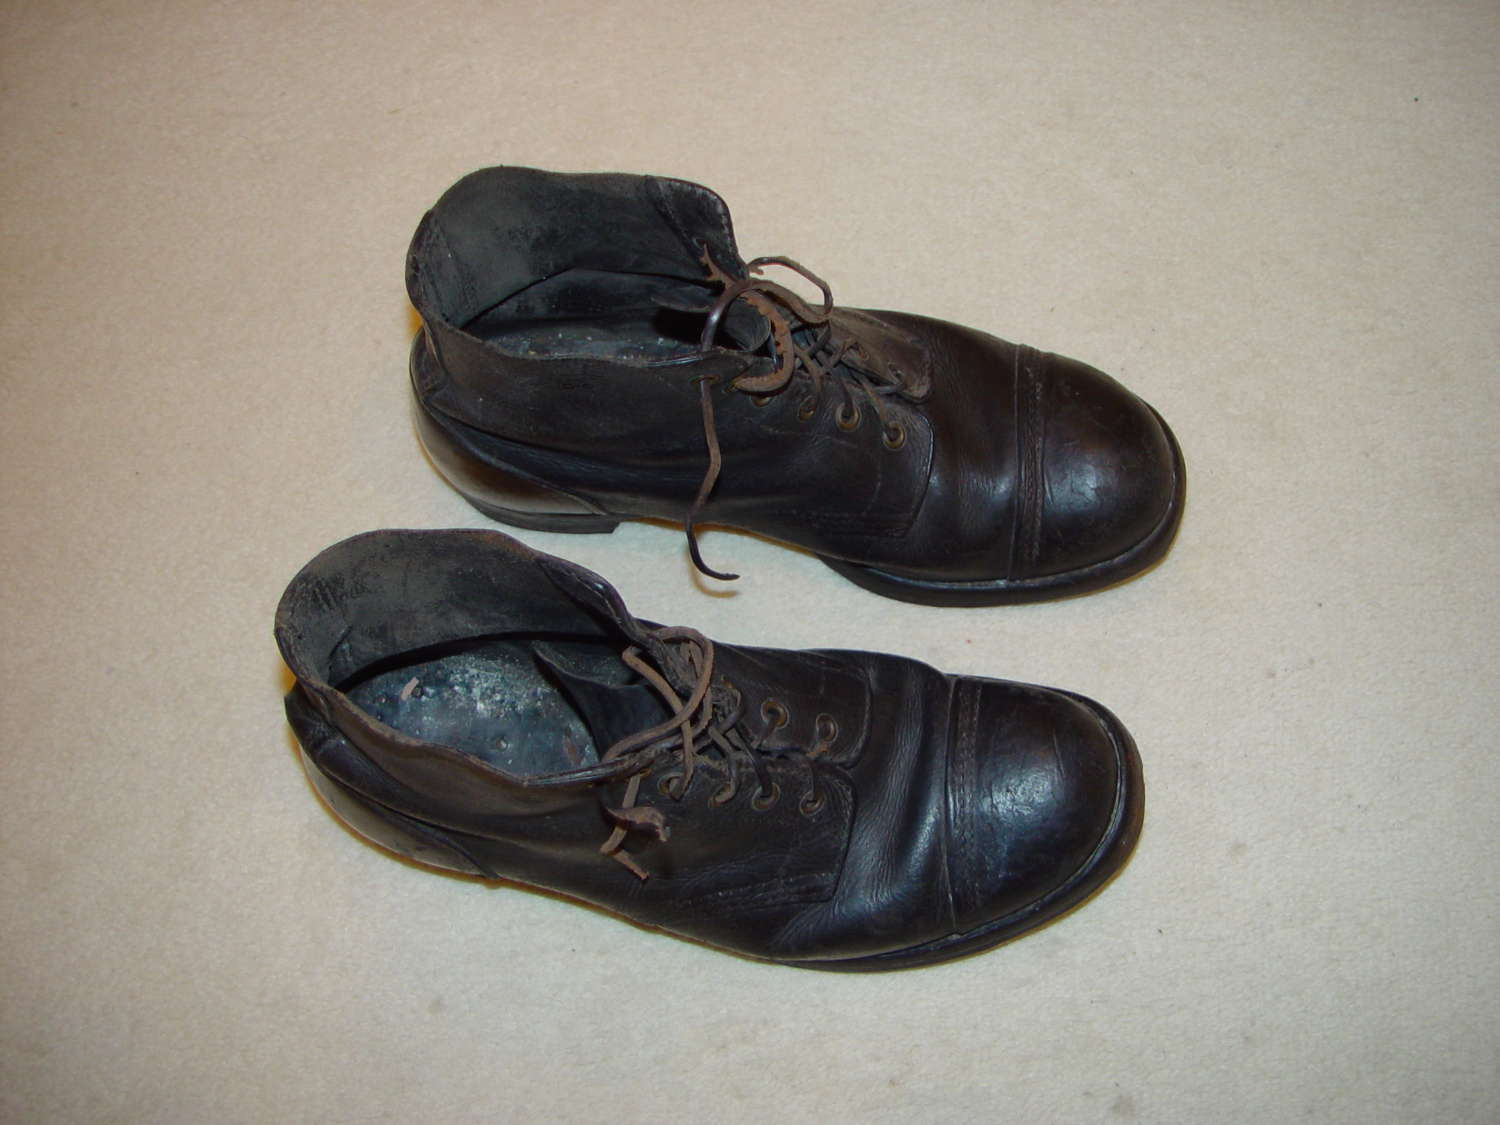 British Army ammunition boots